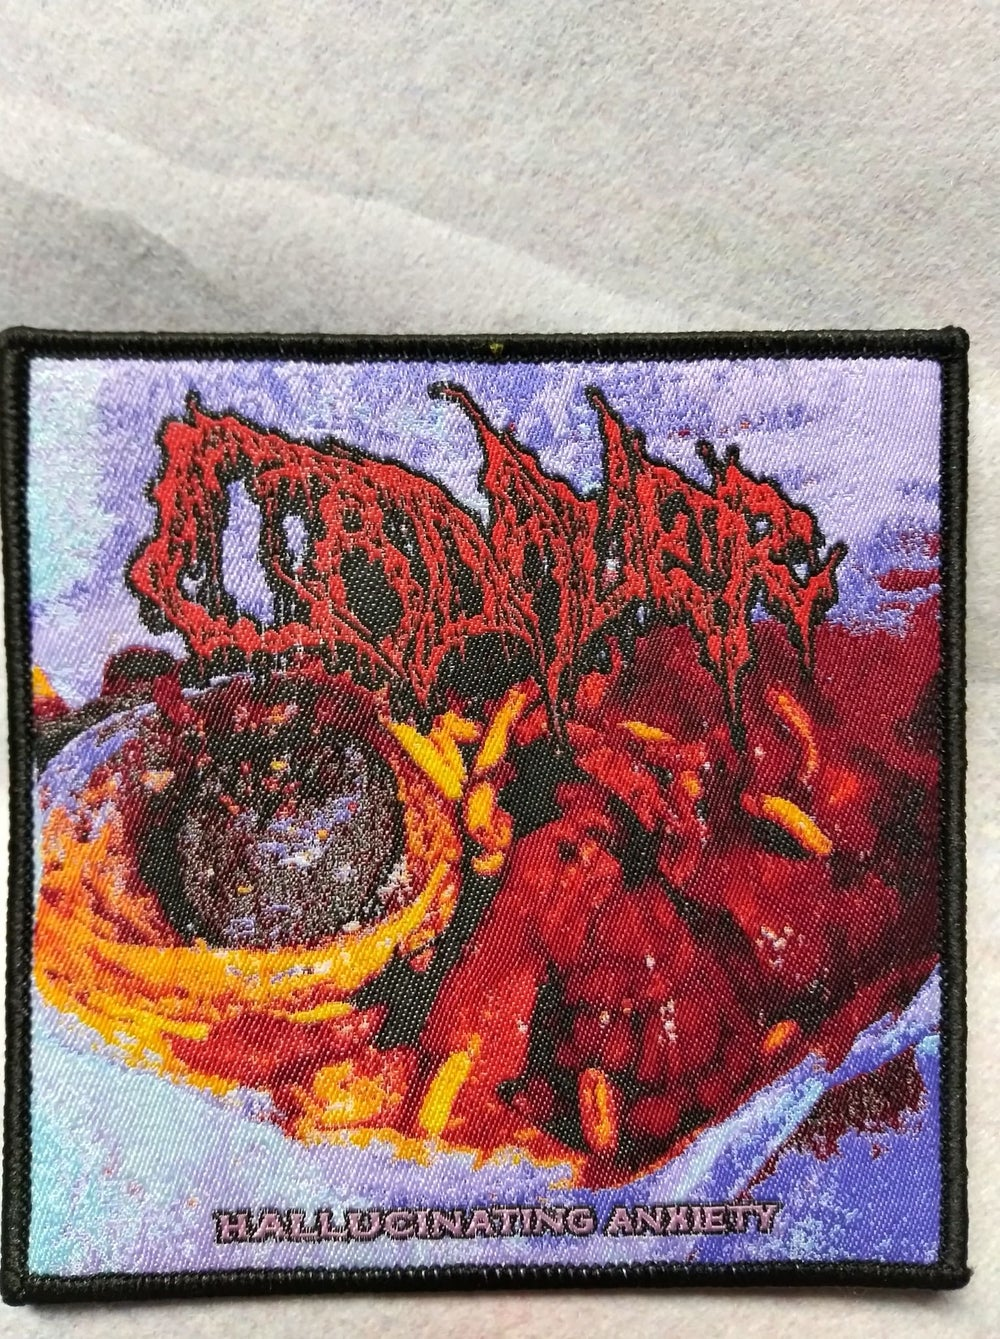 Cadaver Hallucinating Anxiety Woven Patch